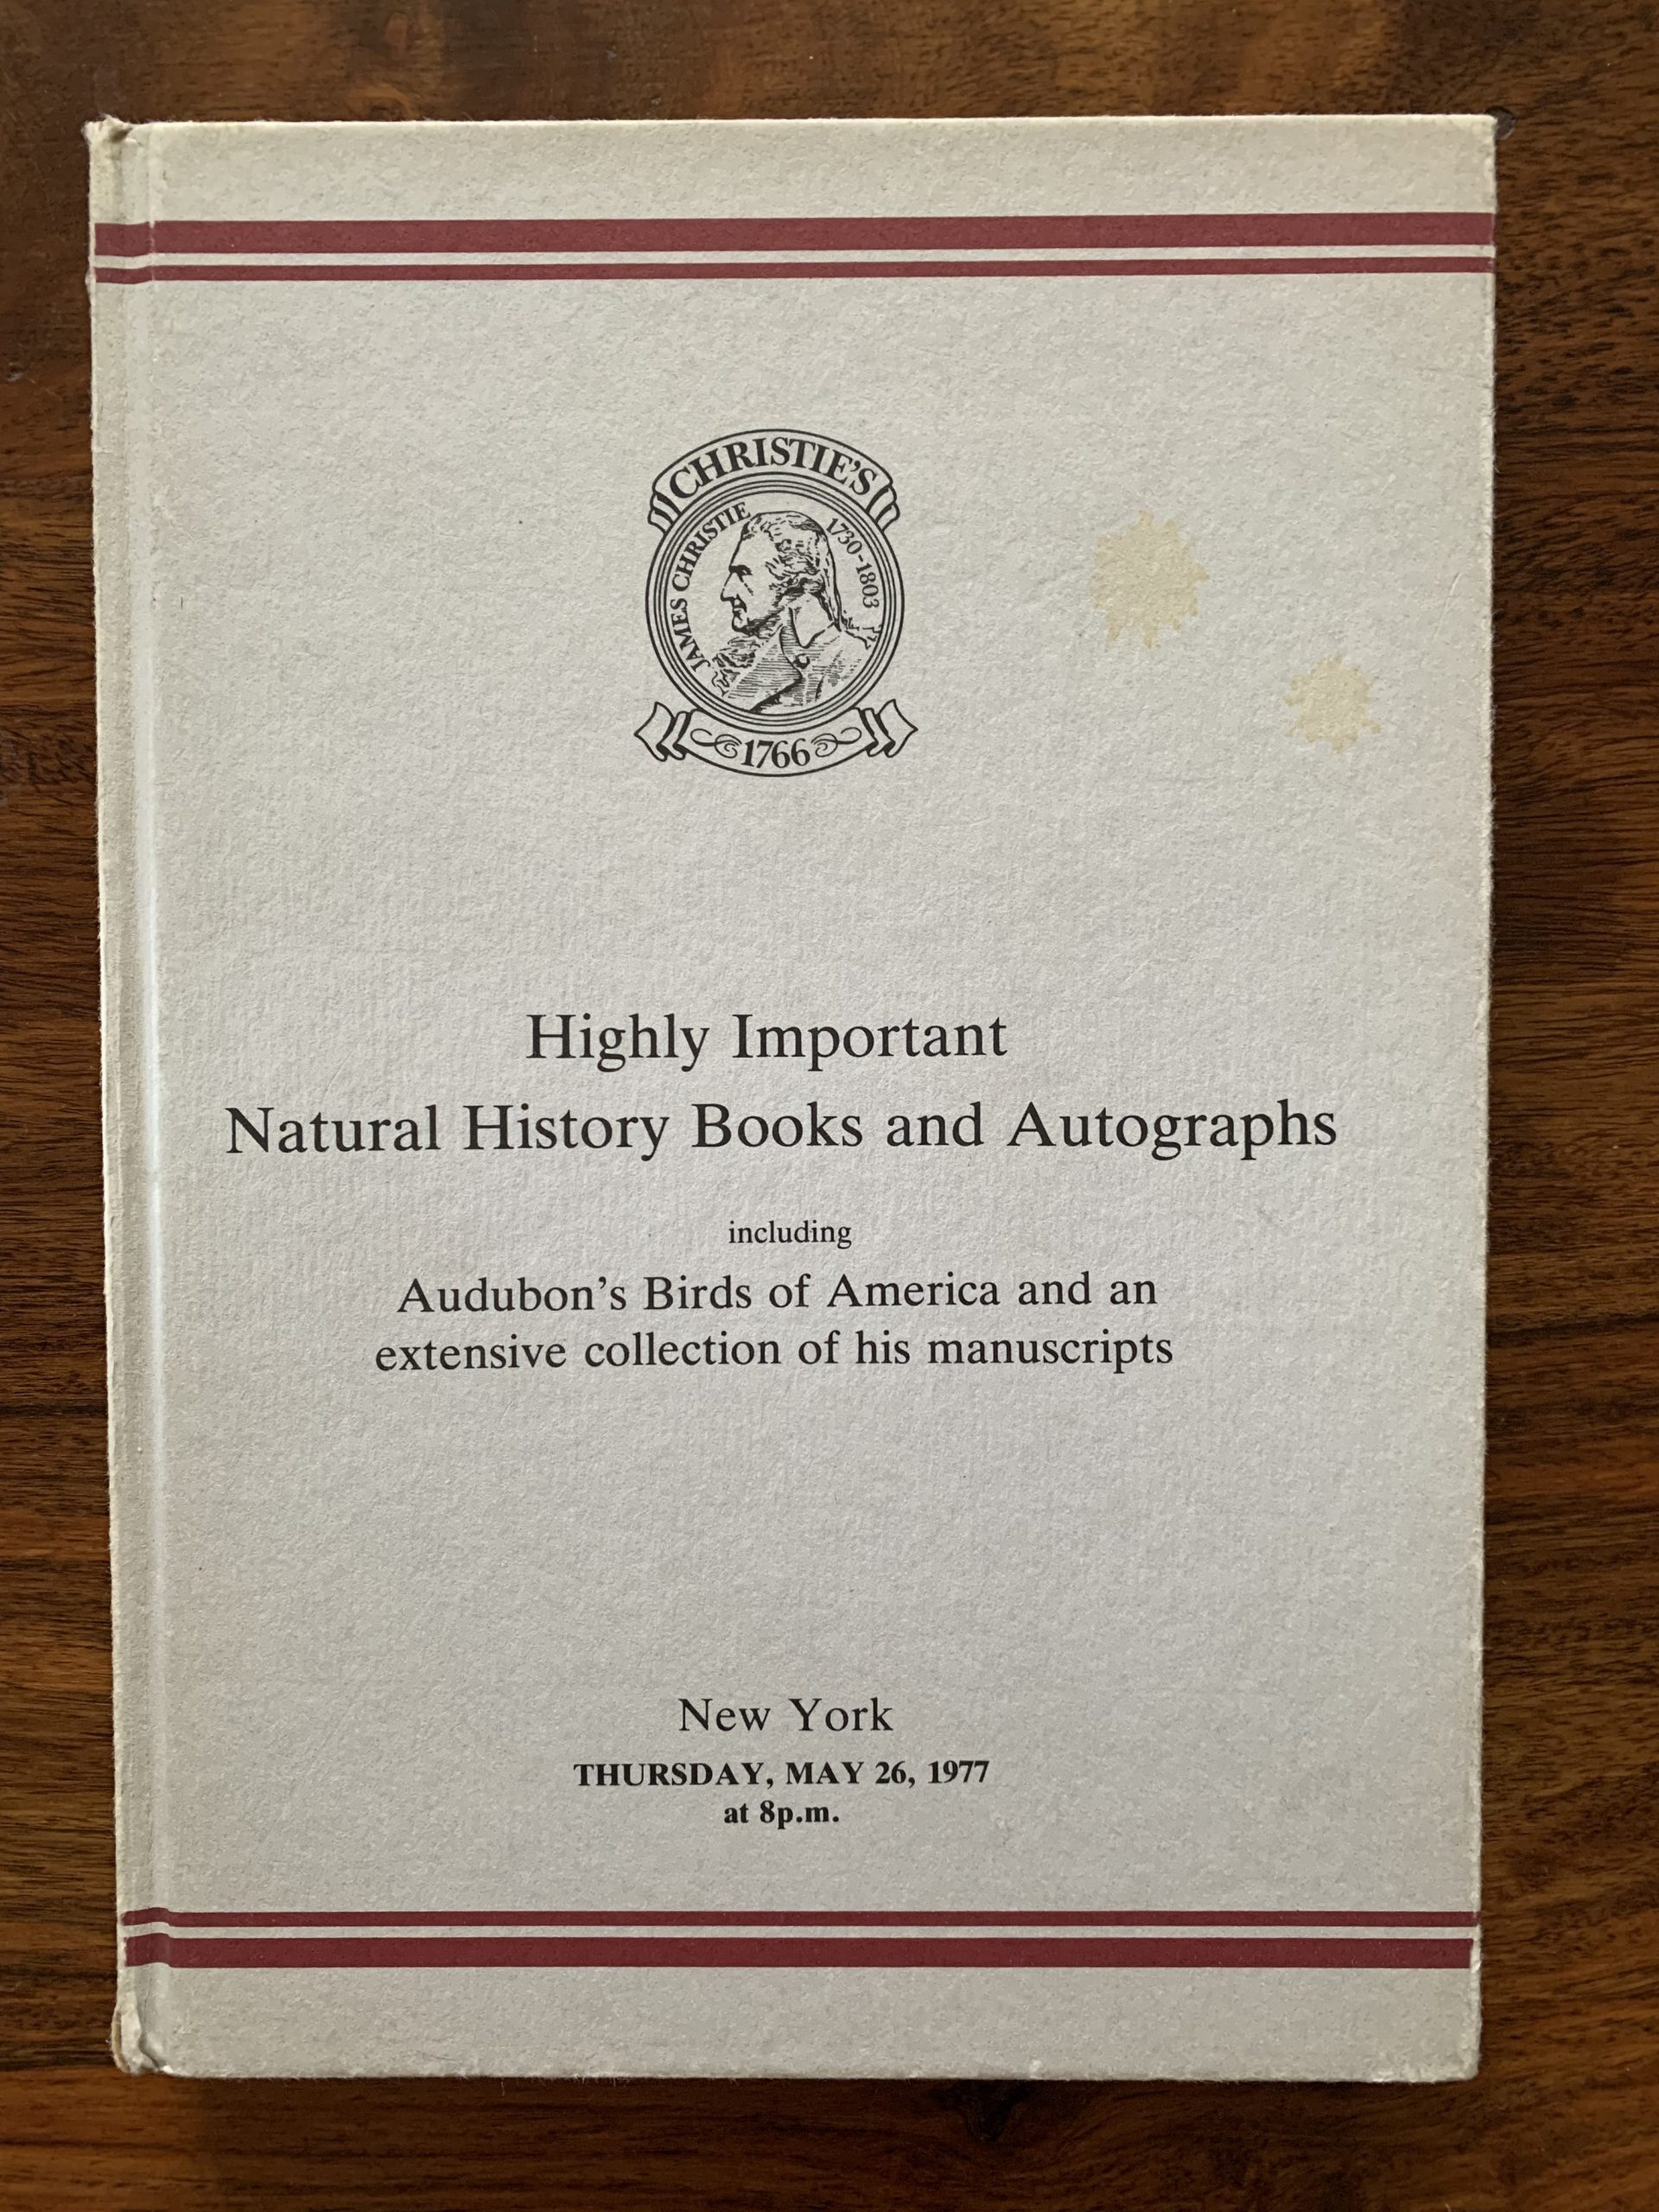 Christie's. Highly Important Natural History Books and Autographs